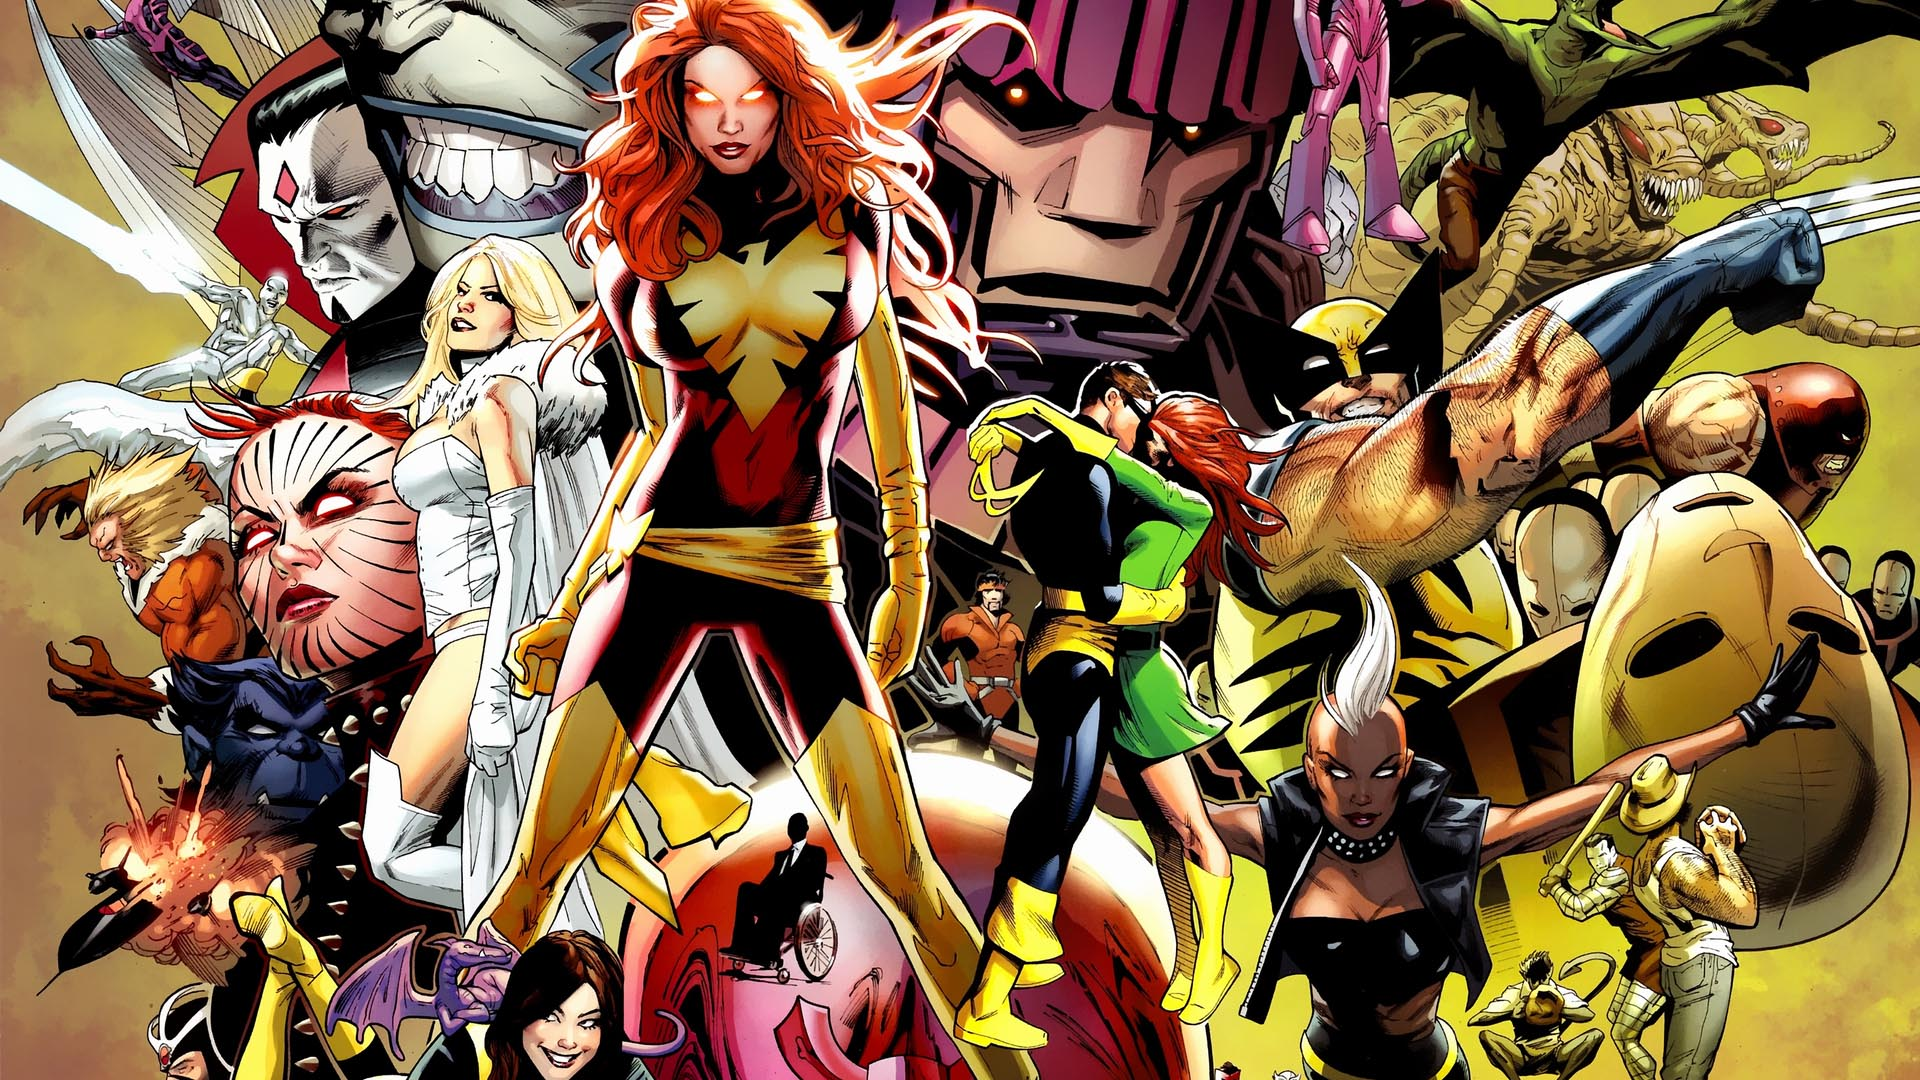 General 1920x1080 Marvel Comics X-Men Archangel (Marvel Comics) Iceman Sabretooth Beast (Henry McCoy) Hope Summers Emma Frost Havok Lockheed (Marvel Comics) Phoenix (Marvel Comics) Sentinel Mister Sinister Apocalypse (character) Cyclops Forge (Marvel Comics) Charles Xavier Nimrod Sauron (Marvel Comics) Wolverine Storm (character) Brood Juggernaut (Marvel Comics) Nightcrawler colossus Kitty Pryde